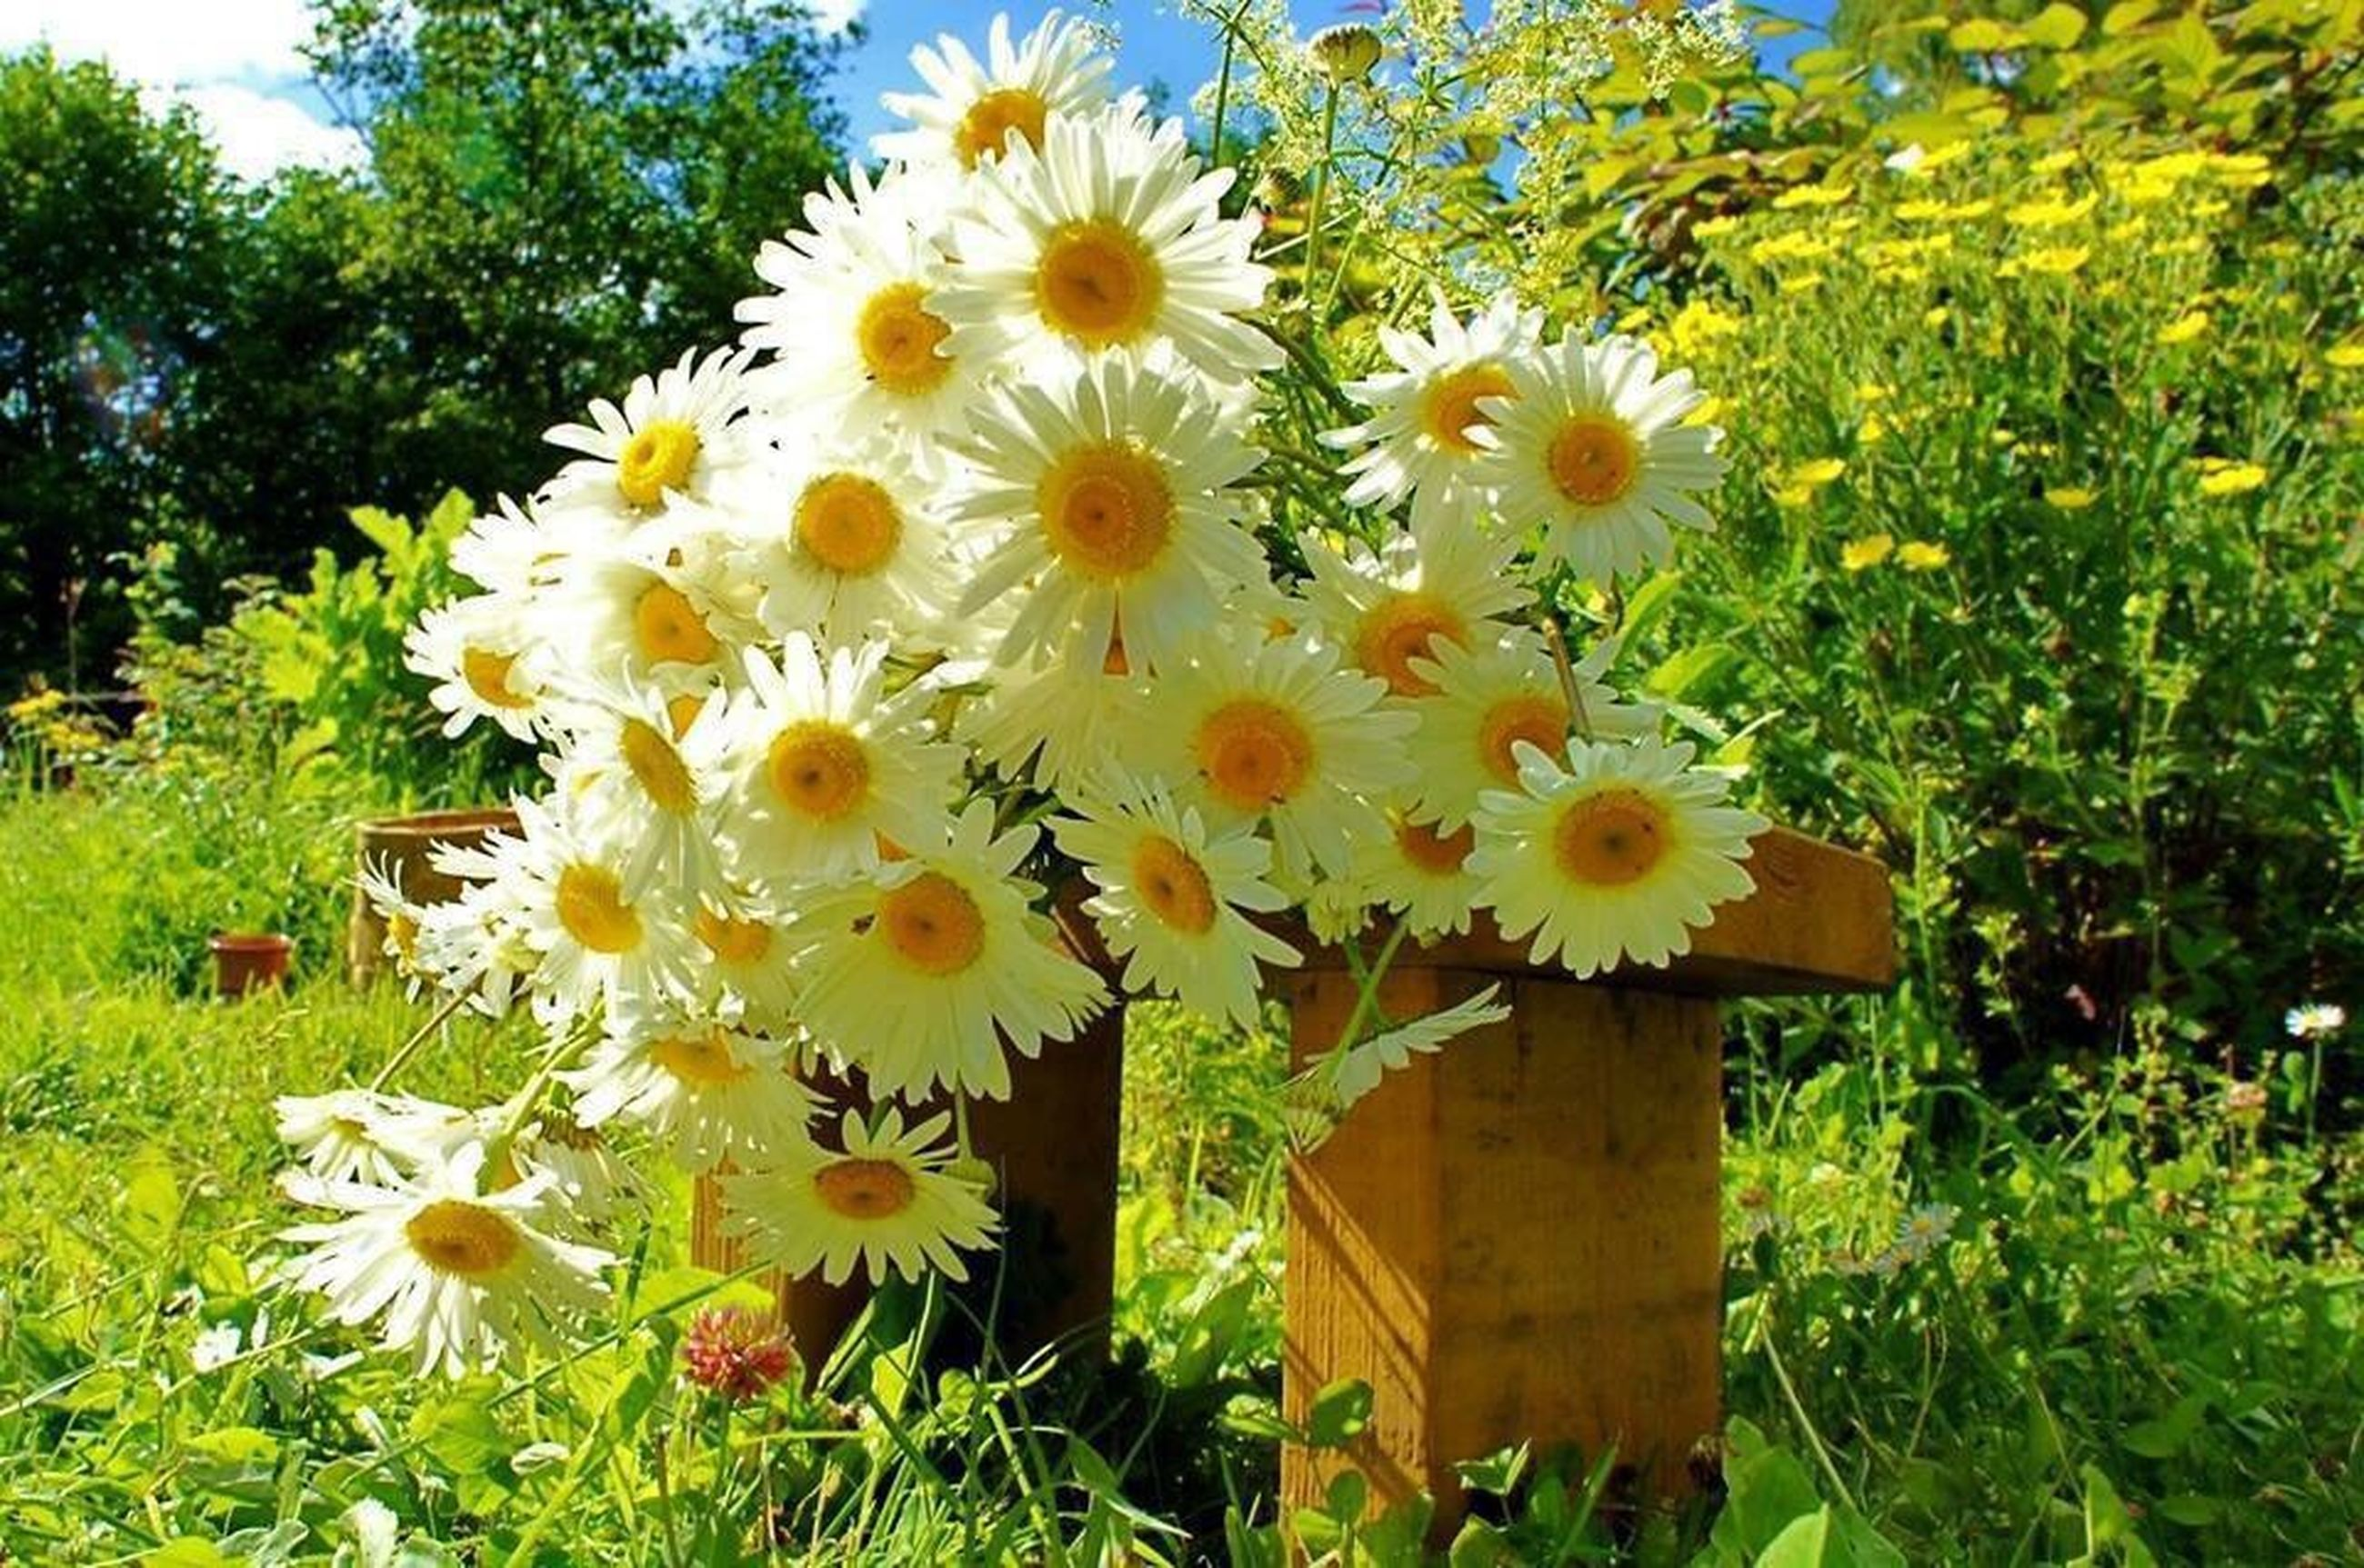 flower, freshness, growth, fragility, petal, beauty in nature, blooming, flower head, yellow, nature, plant, field, in bloom, green color, blossom, white color, park - man made space, day, close-up, outdoors